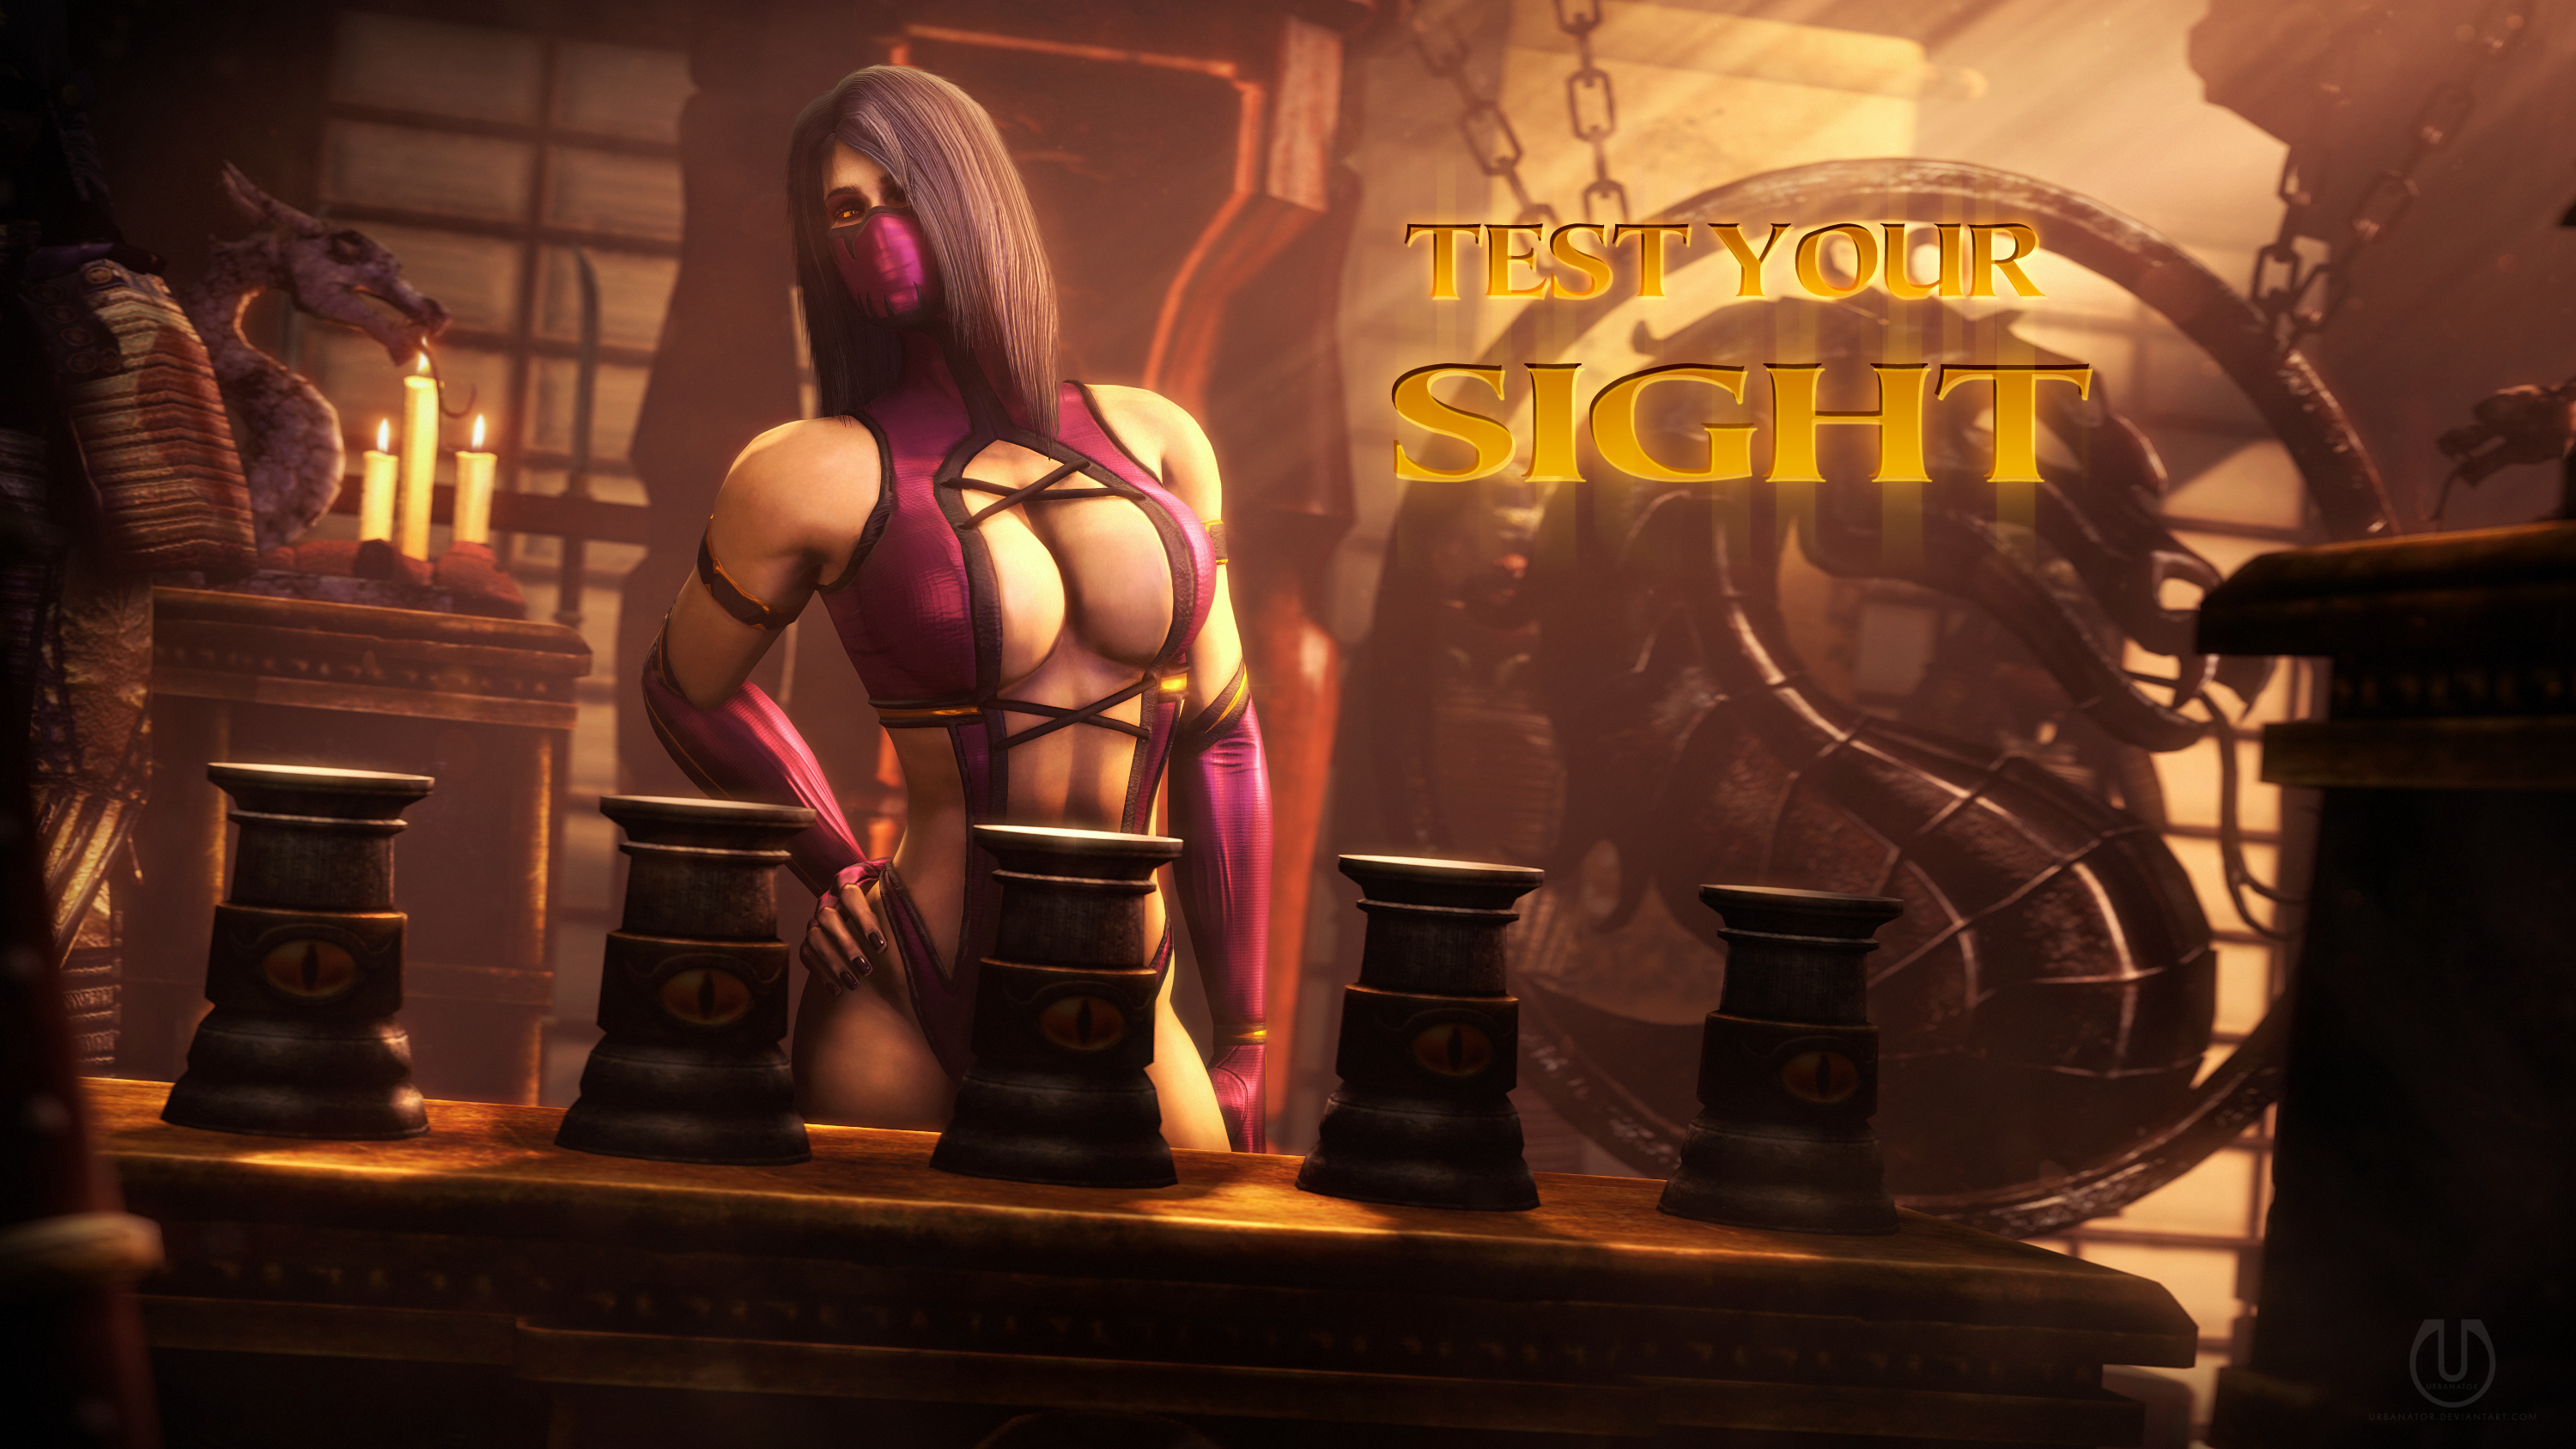 Testing Your Sight with Mileena 1 by Urbanator